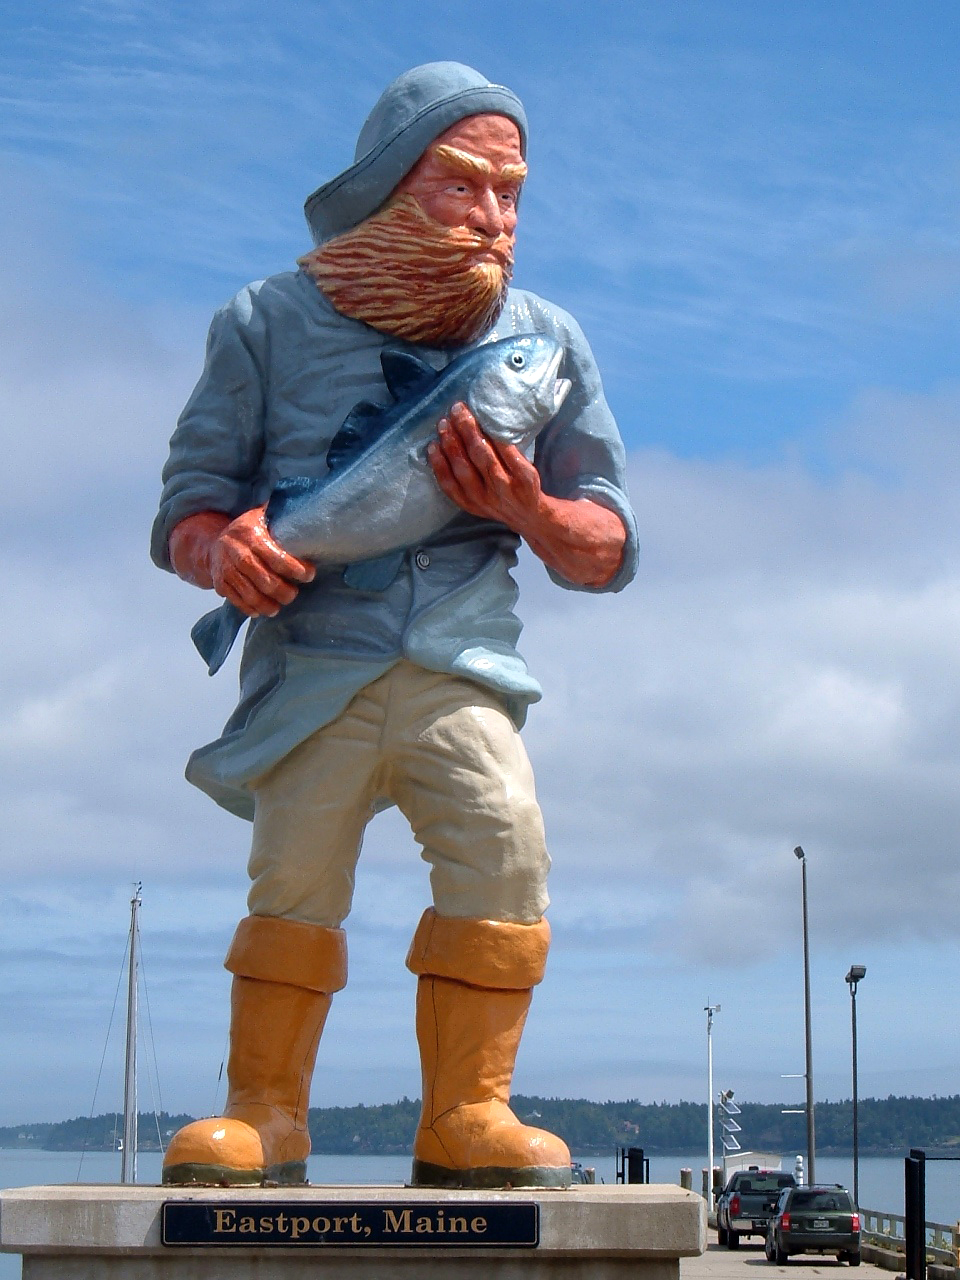 Fisherman Statue in Eastport, Maine: Focus of Restoration Efforts